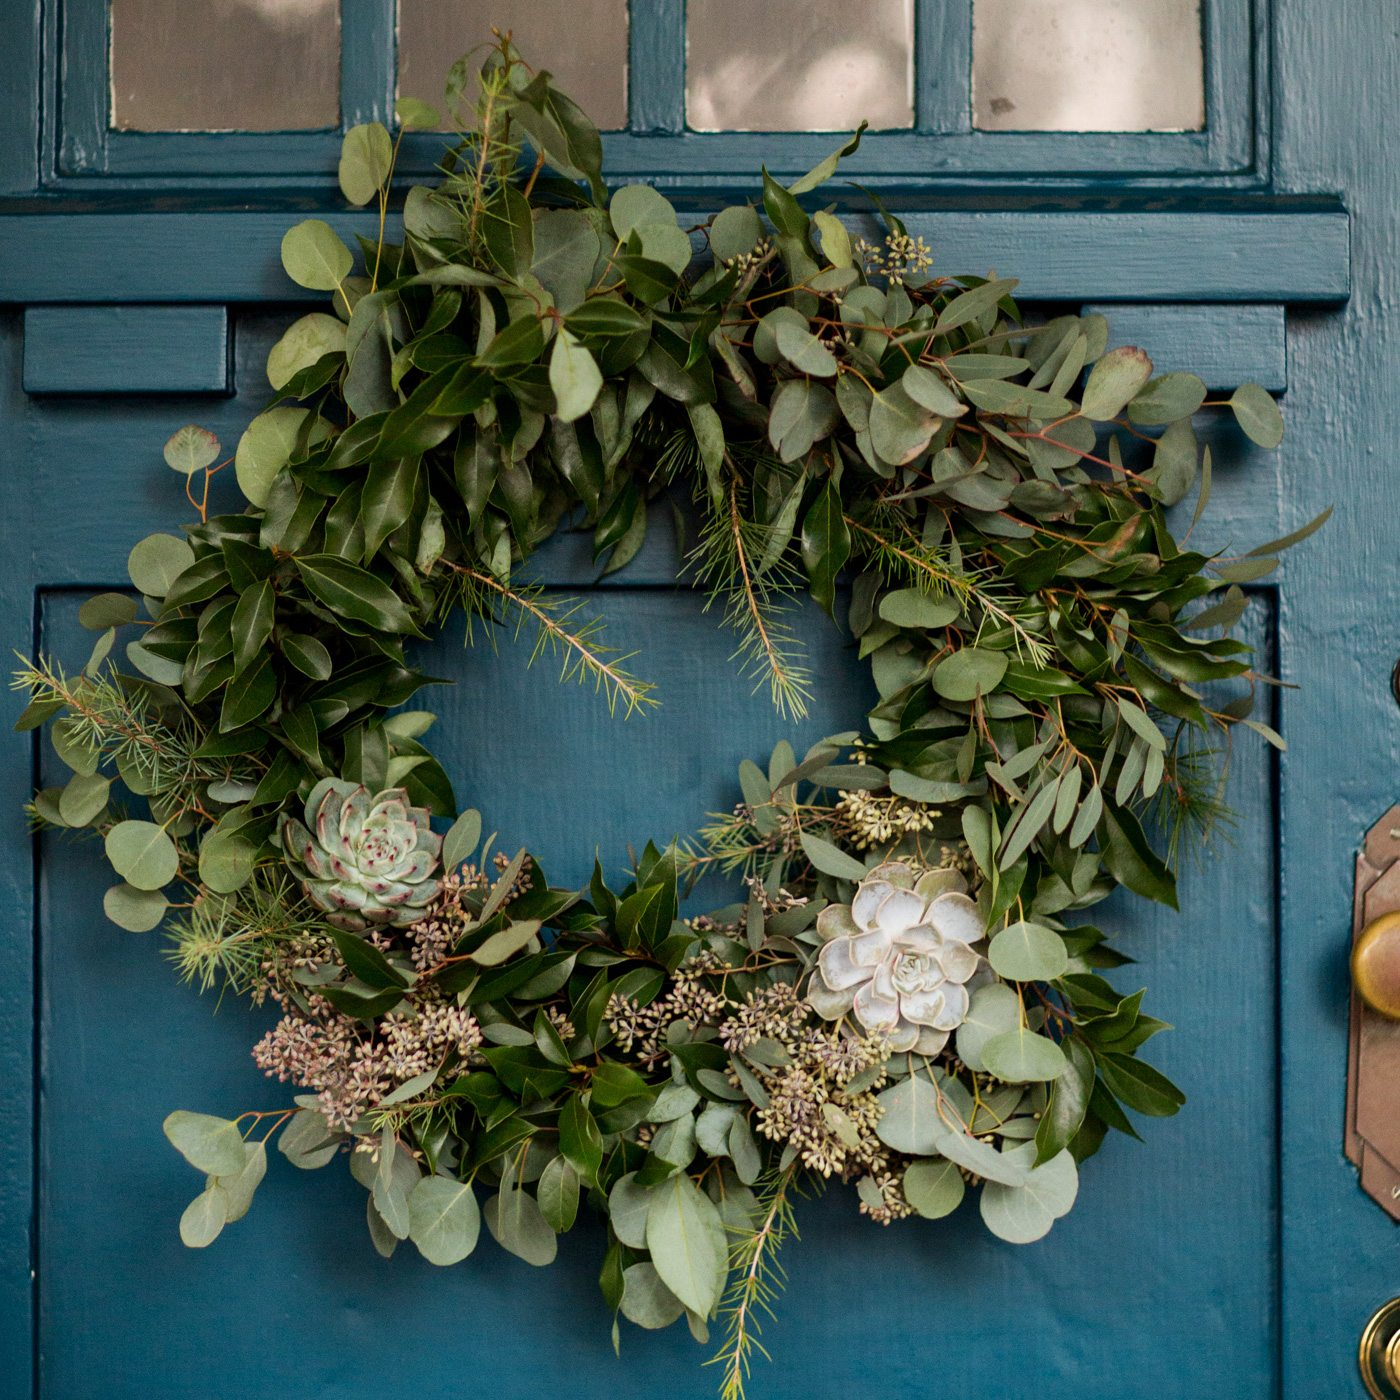 Diy Eucalyptus Pine Christmas Wreath The Sweetest Occasion